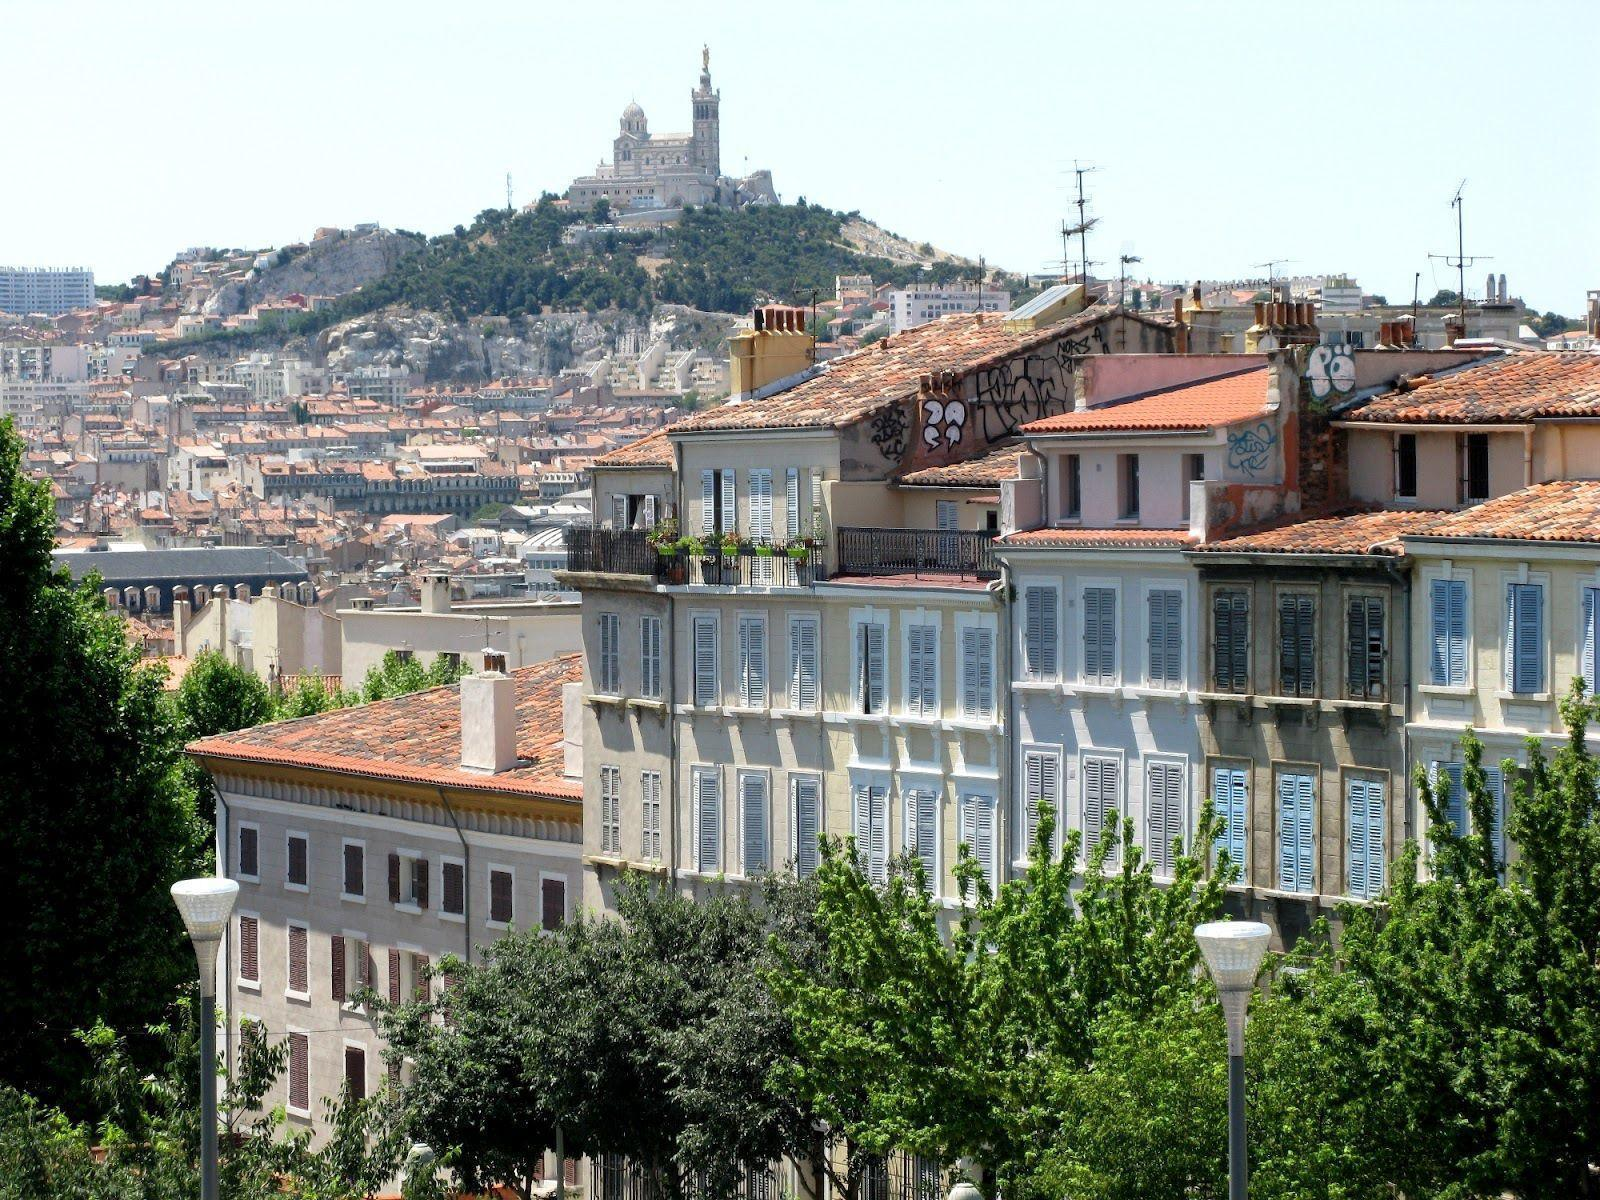 House against the hill in Marseille, France wallpapers and image